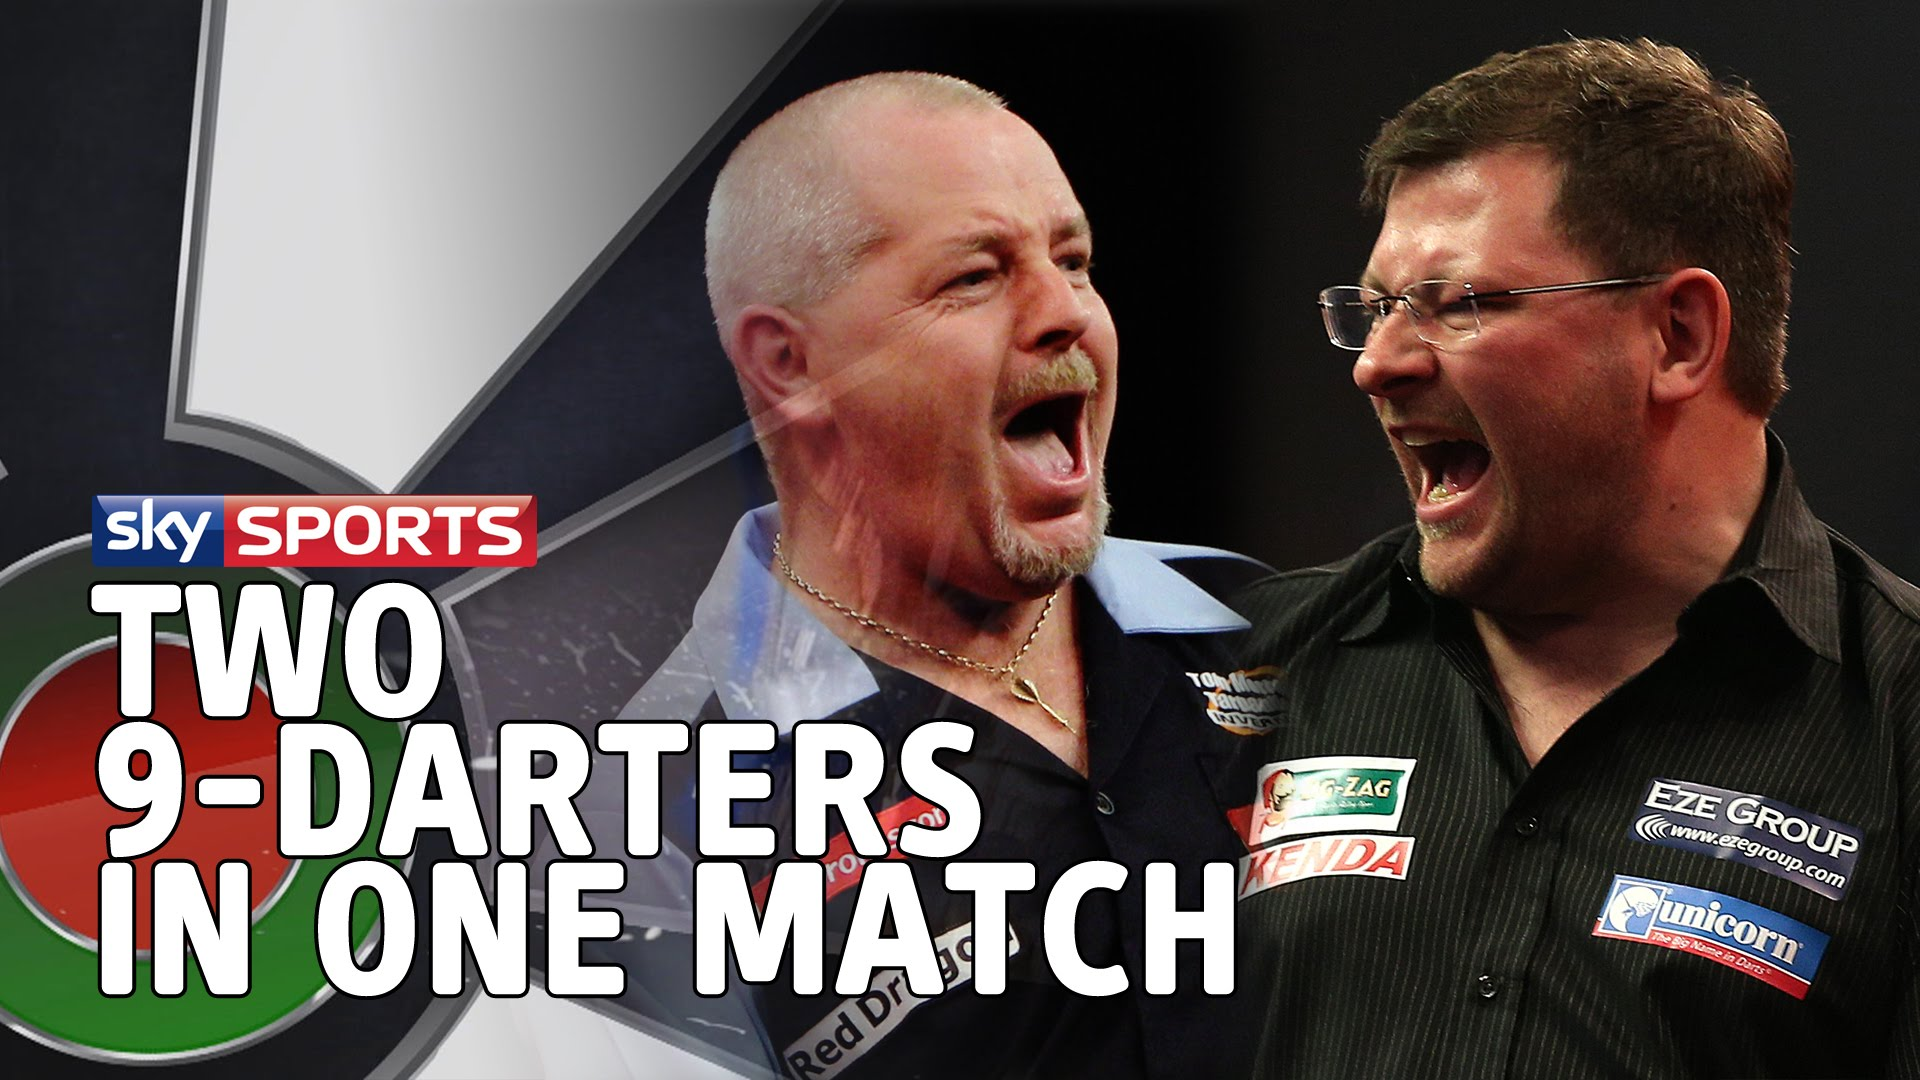 Two 9-darters in One Match with James Wade and Robert Thornton